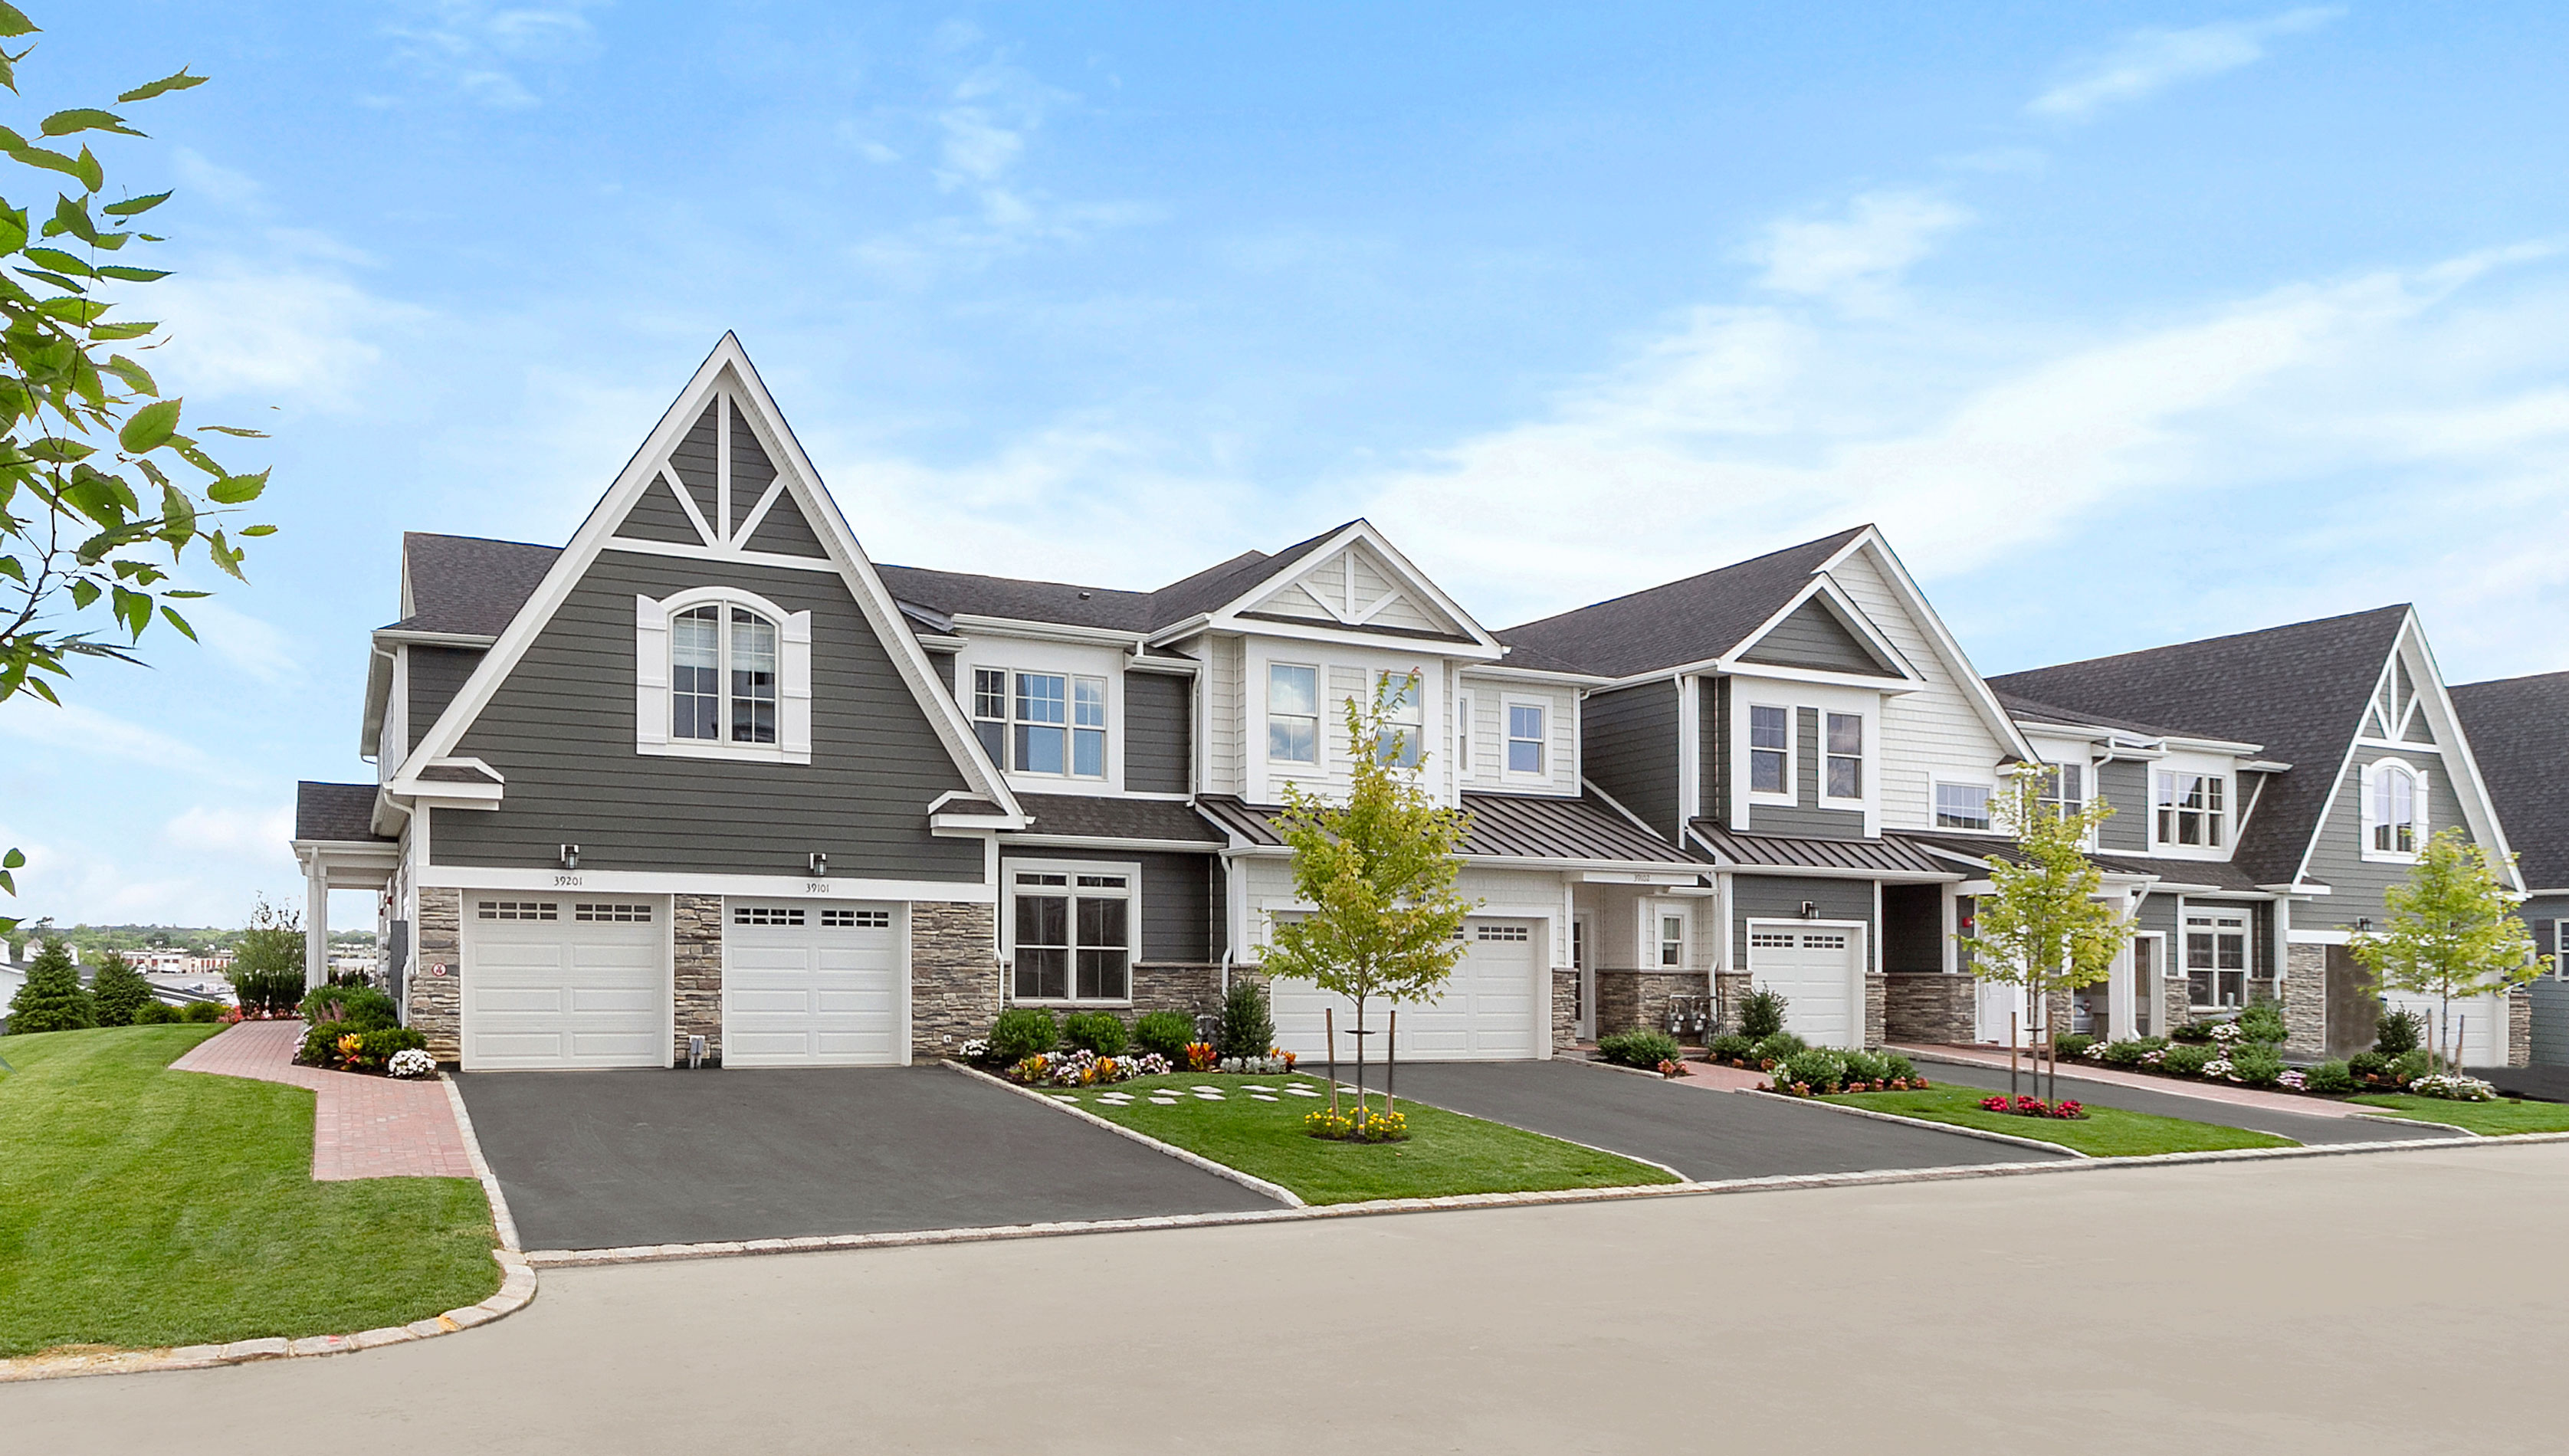 Schedule An Appointment To Tour Country Pointe Plainview S New Construction Homes And Five Star Amenities